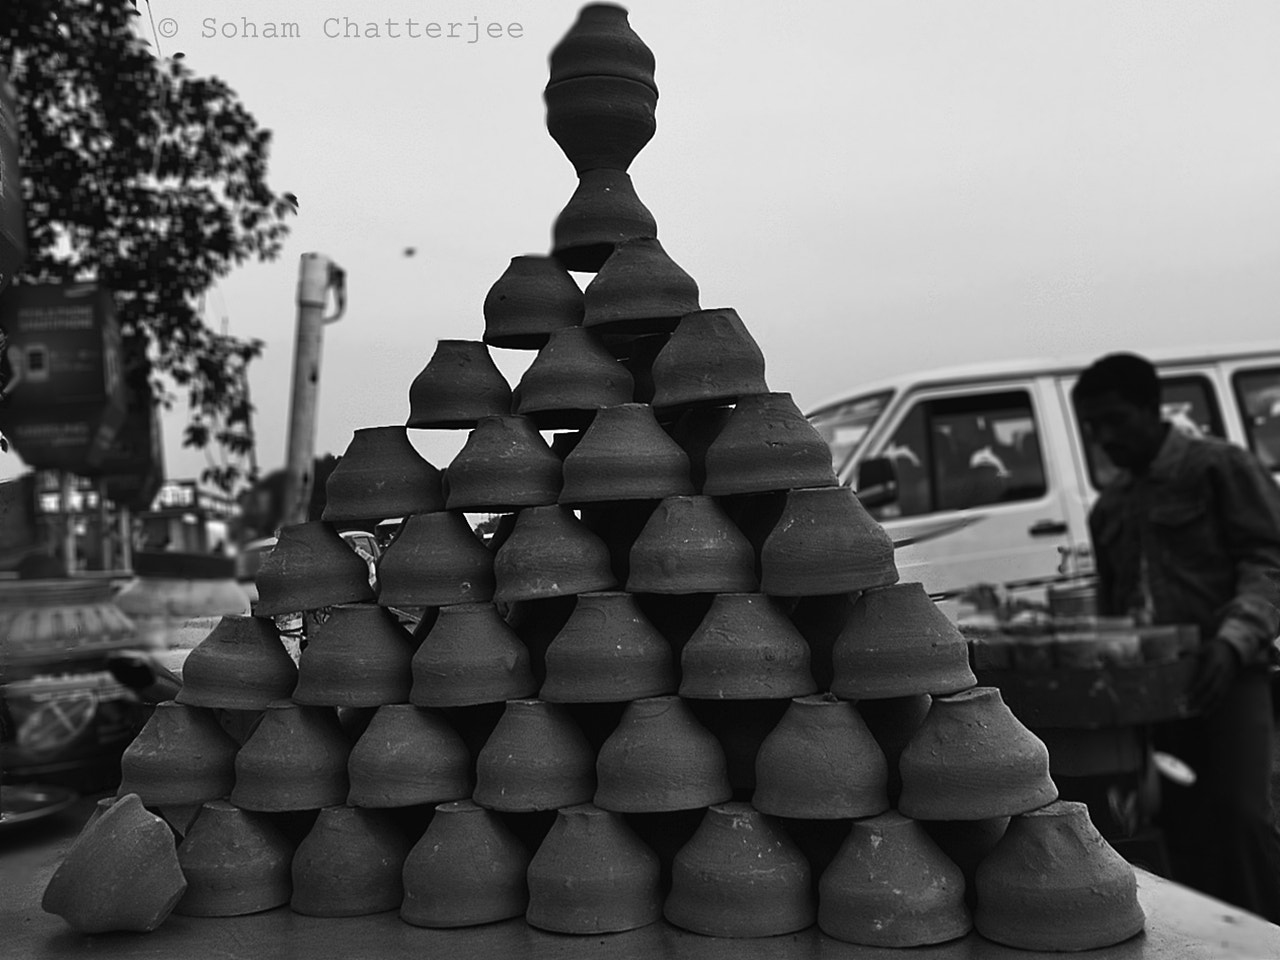 Photograph Cups by Soham Chatterjee on 500px